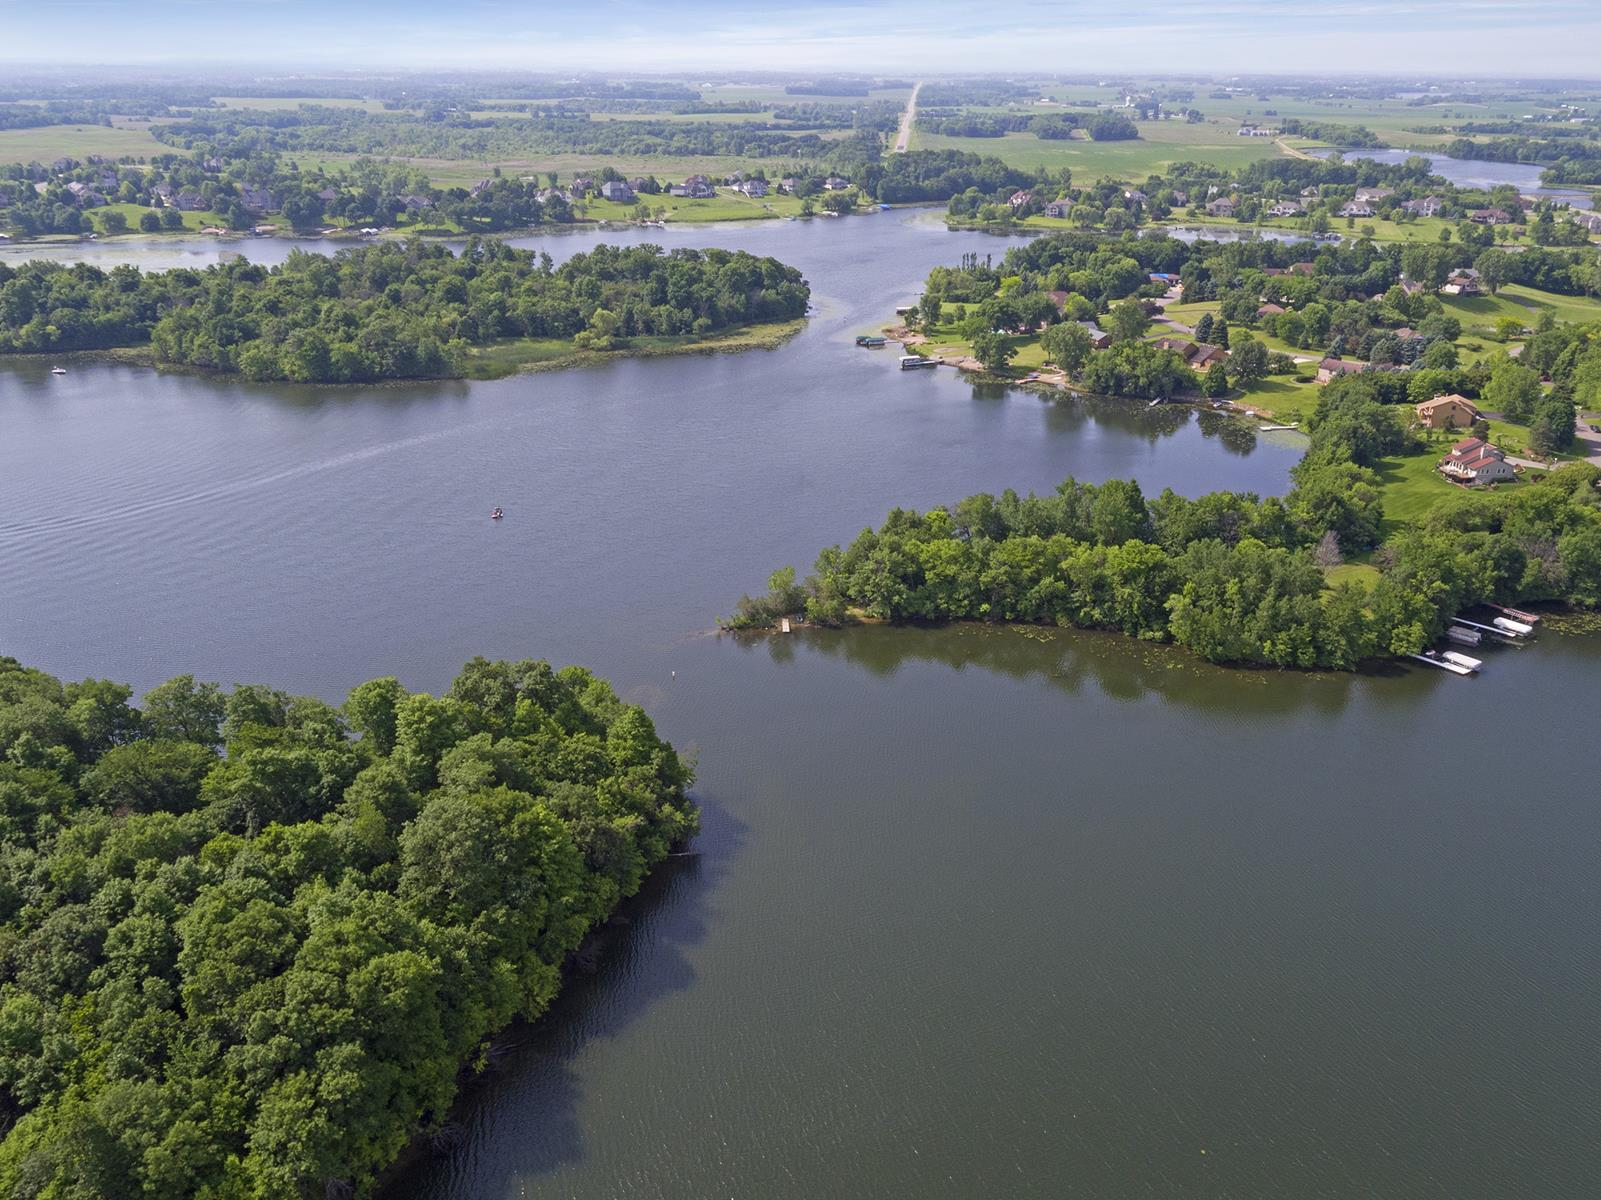 Private Island for Sale at 14385 Highland Drive 14385 Highland Drive Shakopee, Minnesota 55379 United States